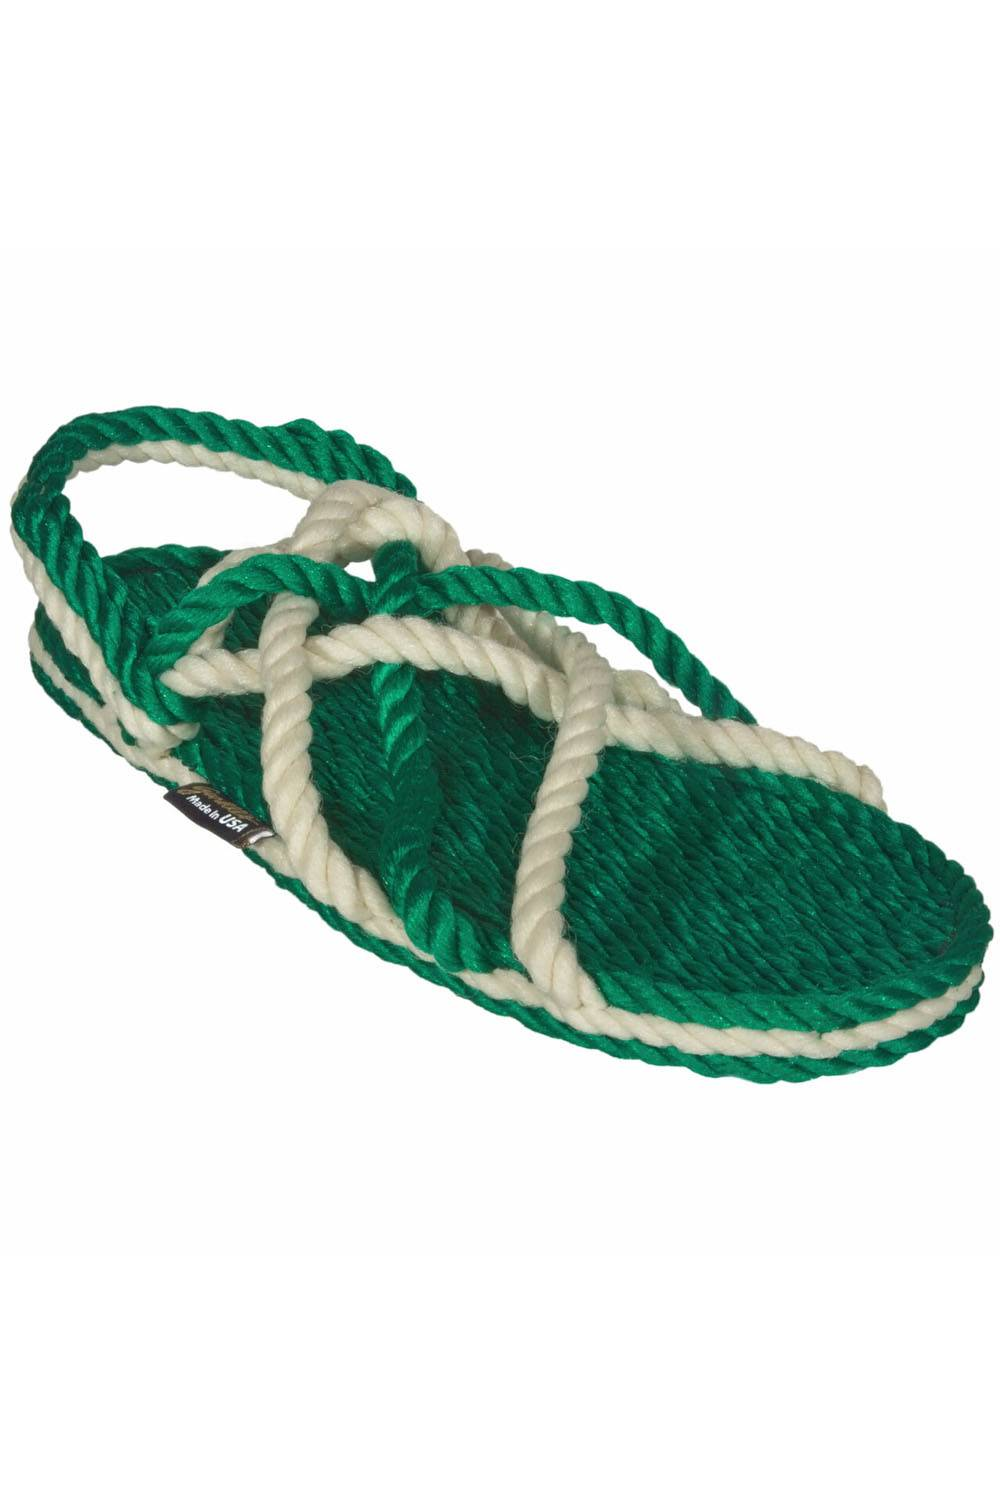 gurkees usa made sustainable sandals